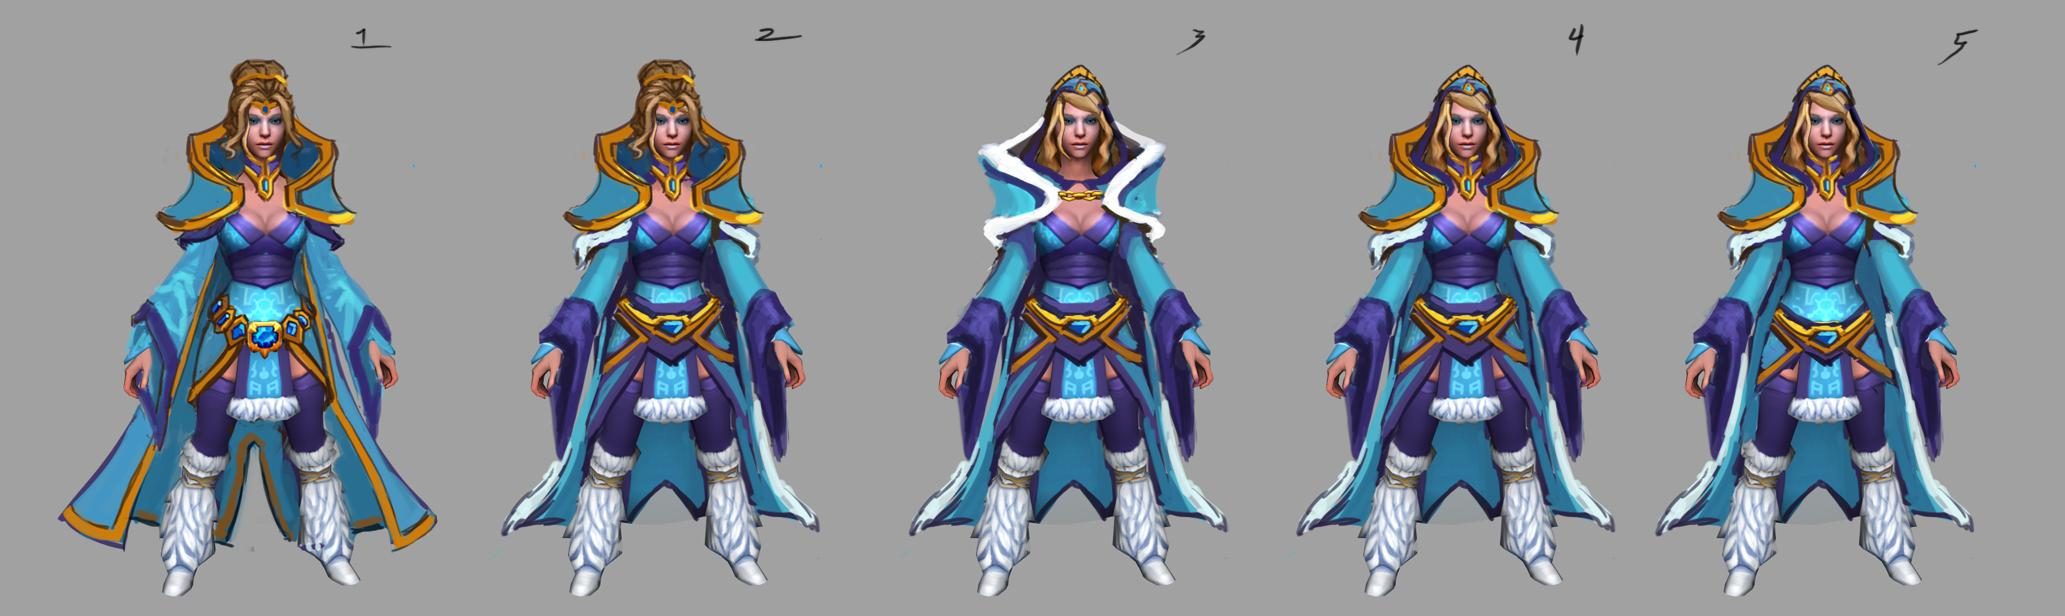 [Dota2] – Crystal Maiden – Ice Queen - Polycount Forum